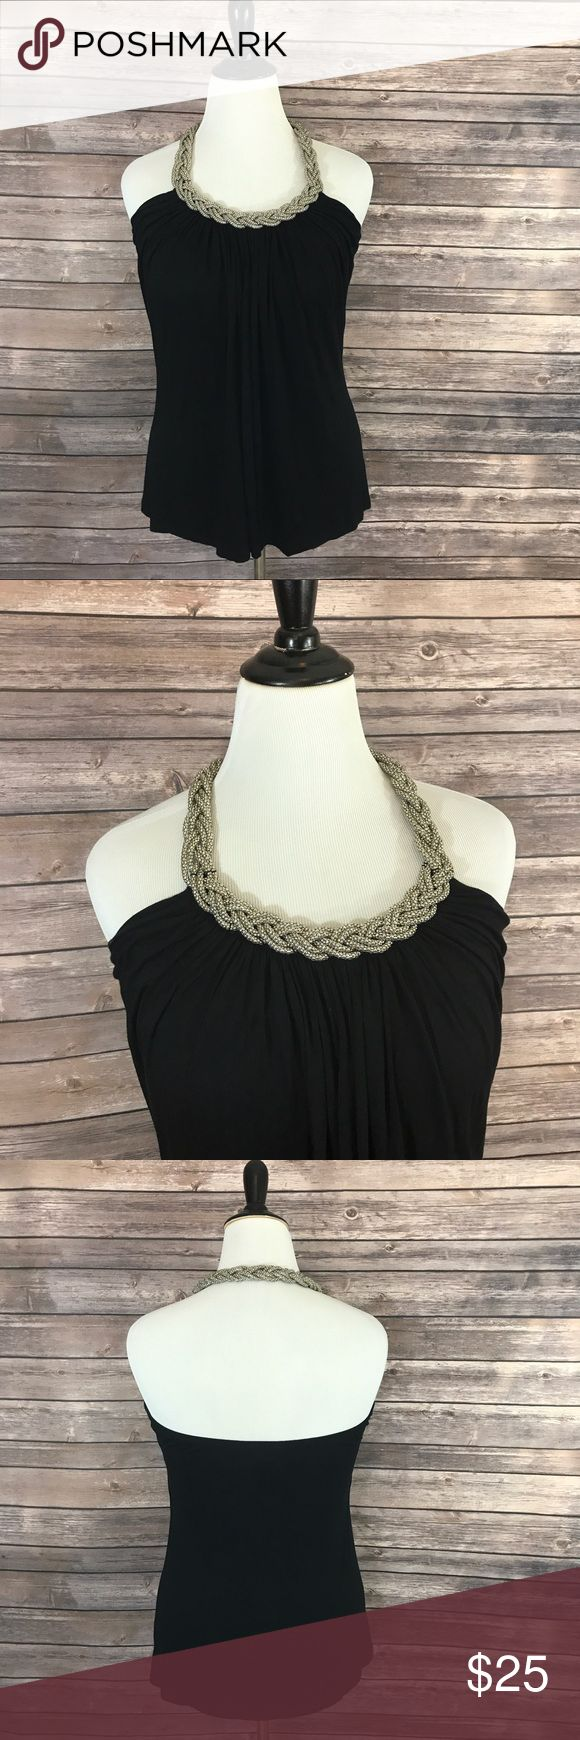 Cable Gauge Top Large Metal Braided Halter Black Cable Gauge Womens Top Size Large Metal Braided Halter Sleeveless Stretch Black. Measurements: (in inches) Underarm to underarm: 17 Length: 28.5  Good, gently used condition Cable & Gauge Tops Tank Tops